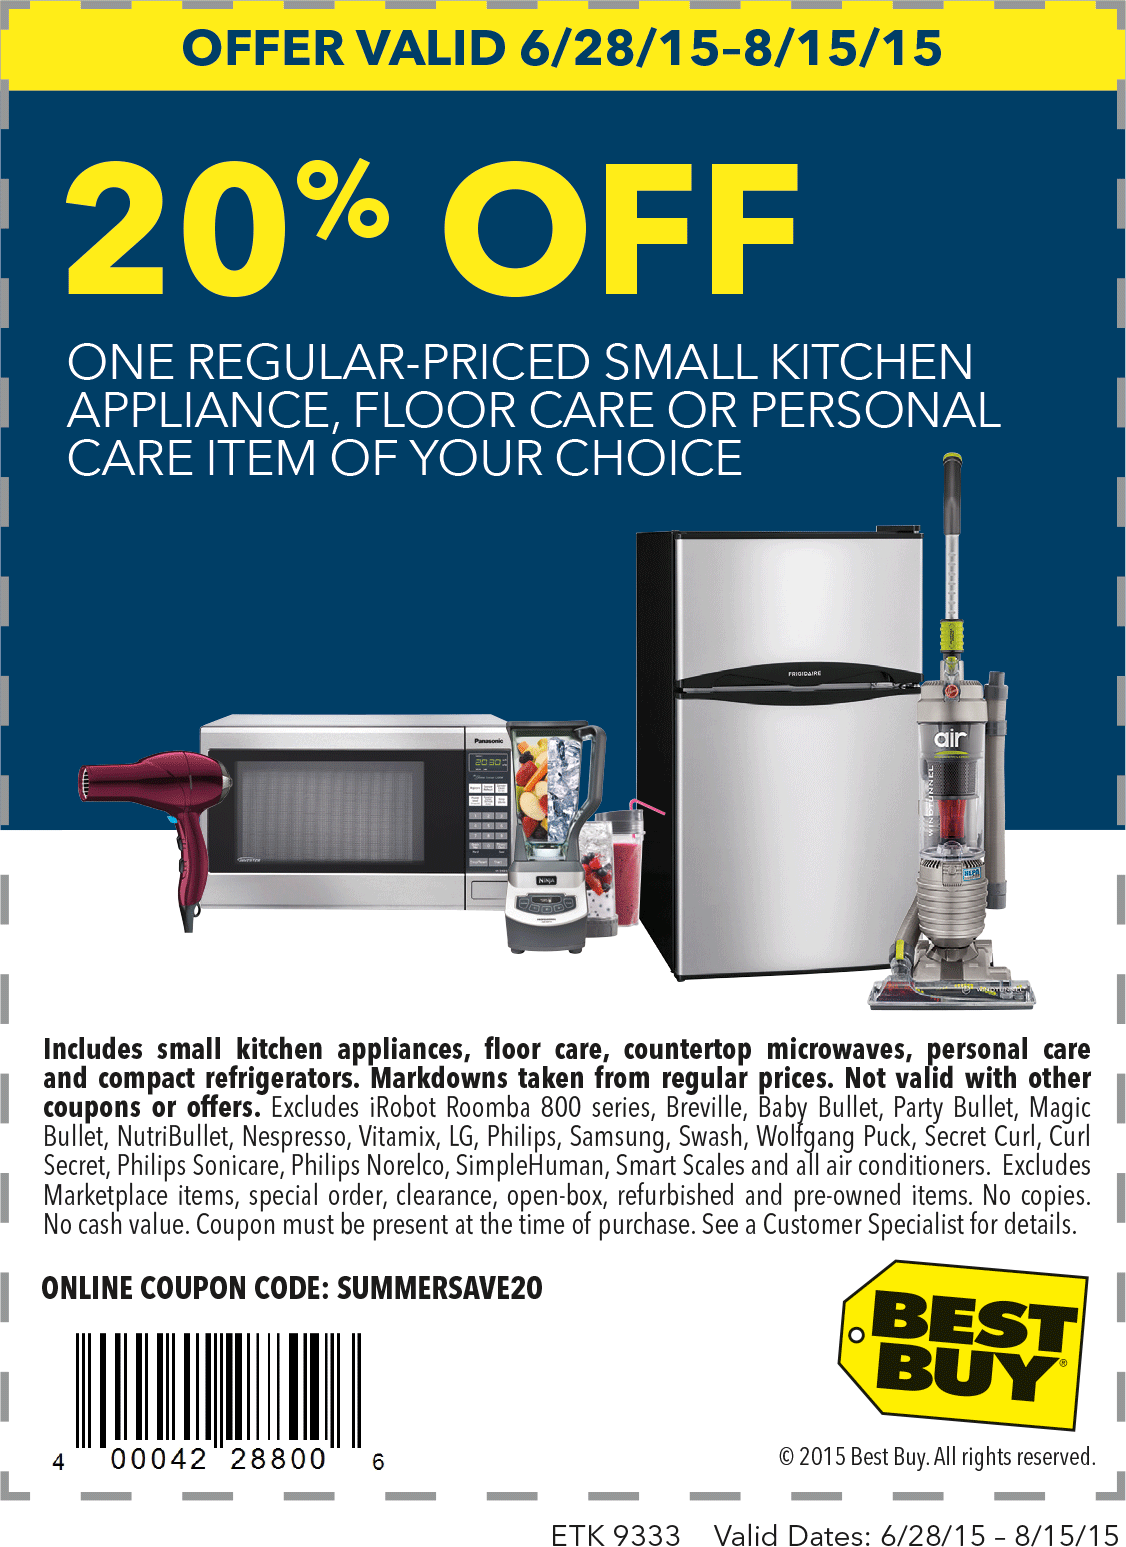 Best Buy Coupon April 2017 20% off a small appliance at Best Buy, or online via promo code SUMMERSAVE20